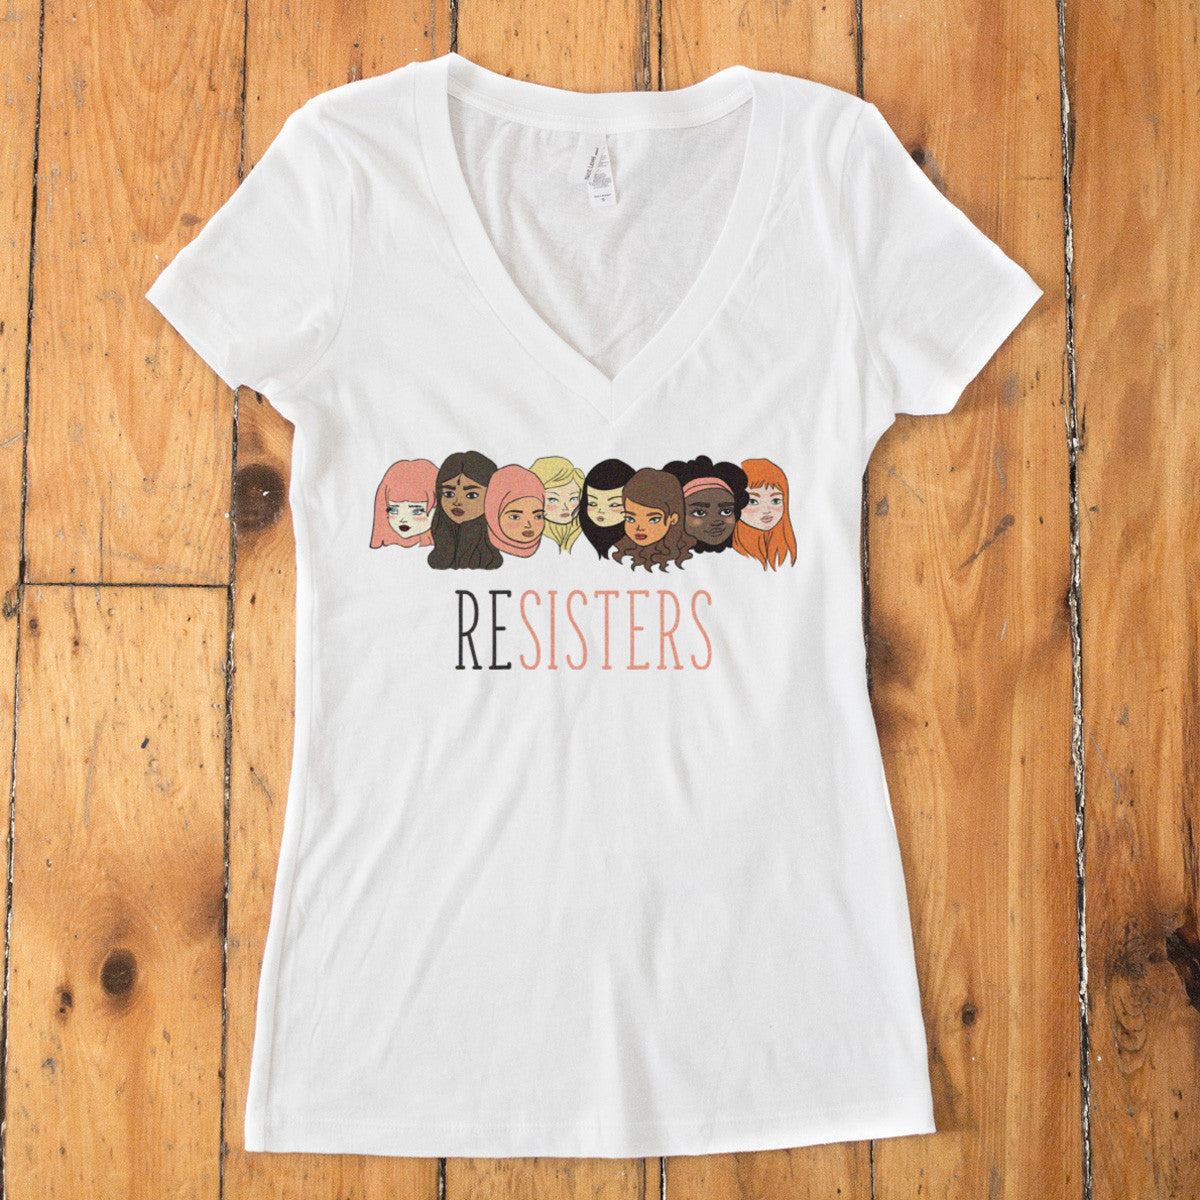 ReSISTERS Women's V-Neck T-shirt